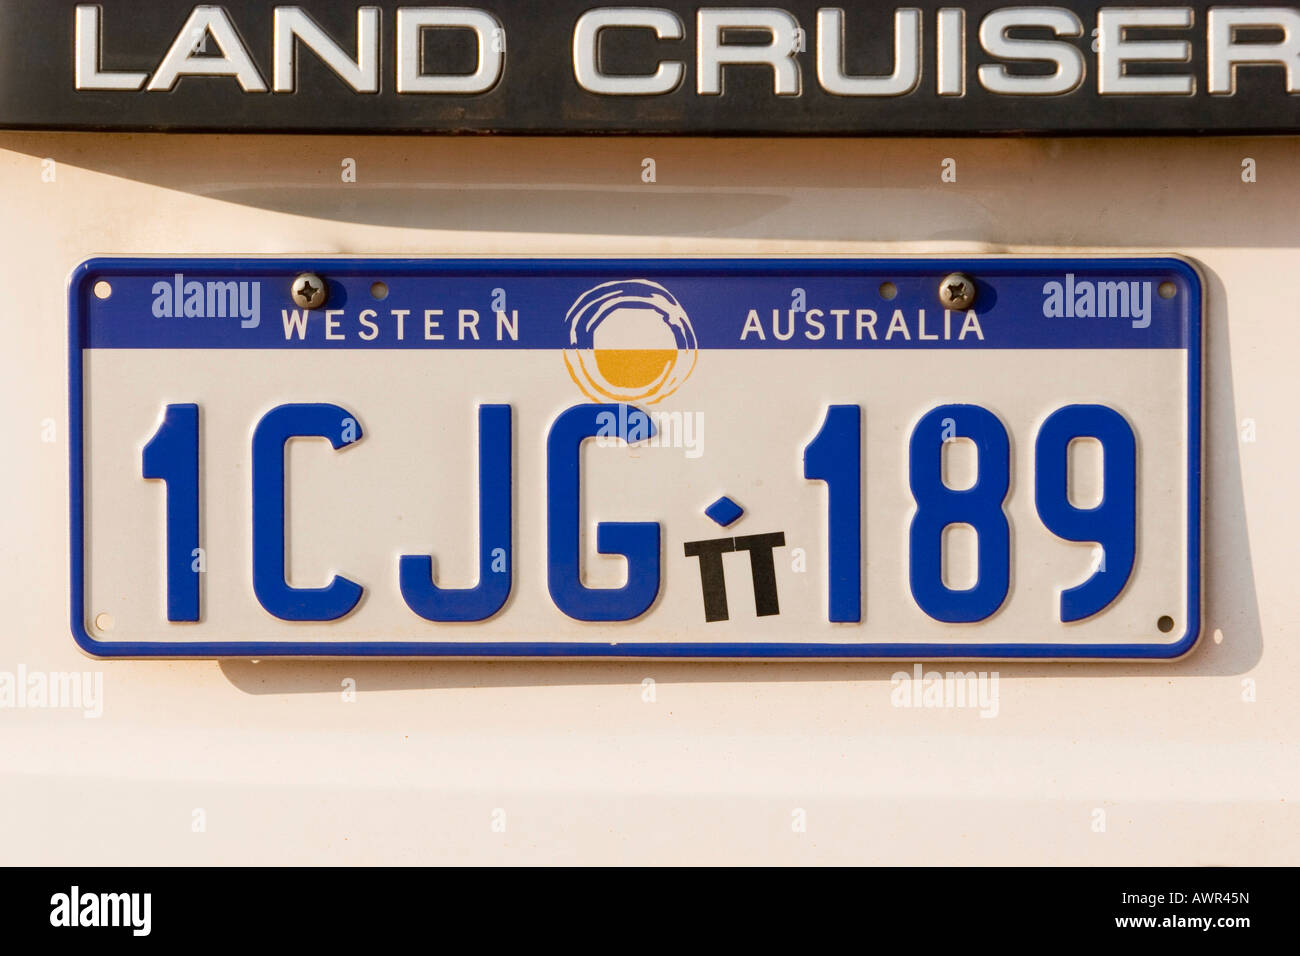 Australian Number Plate Stock Photos Amp Australian Number